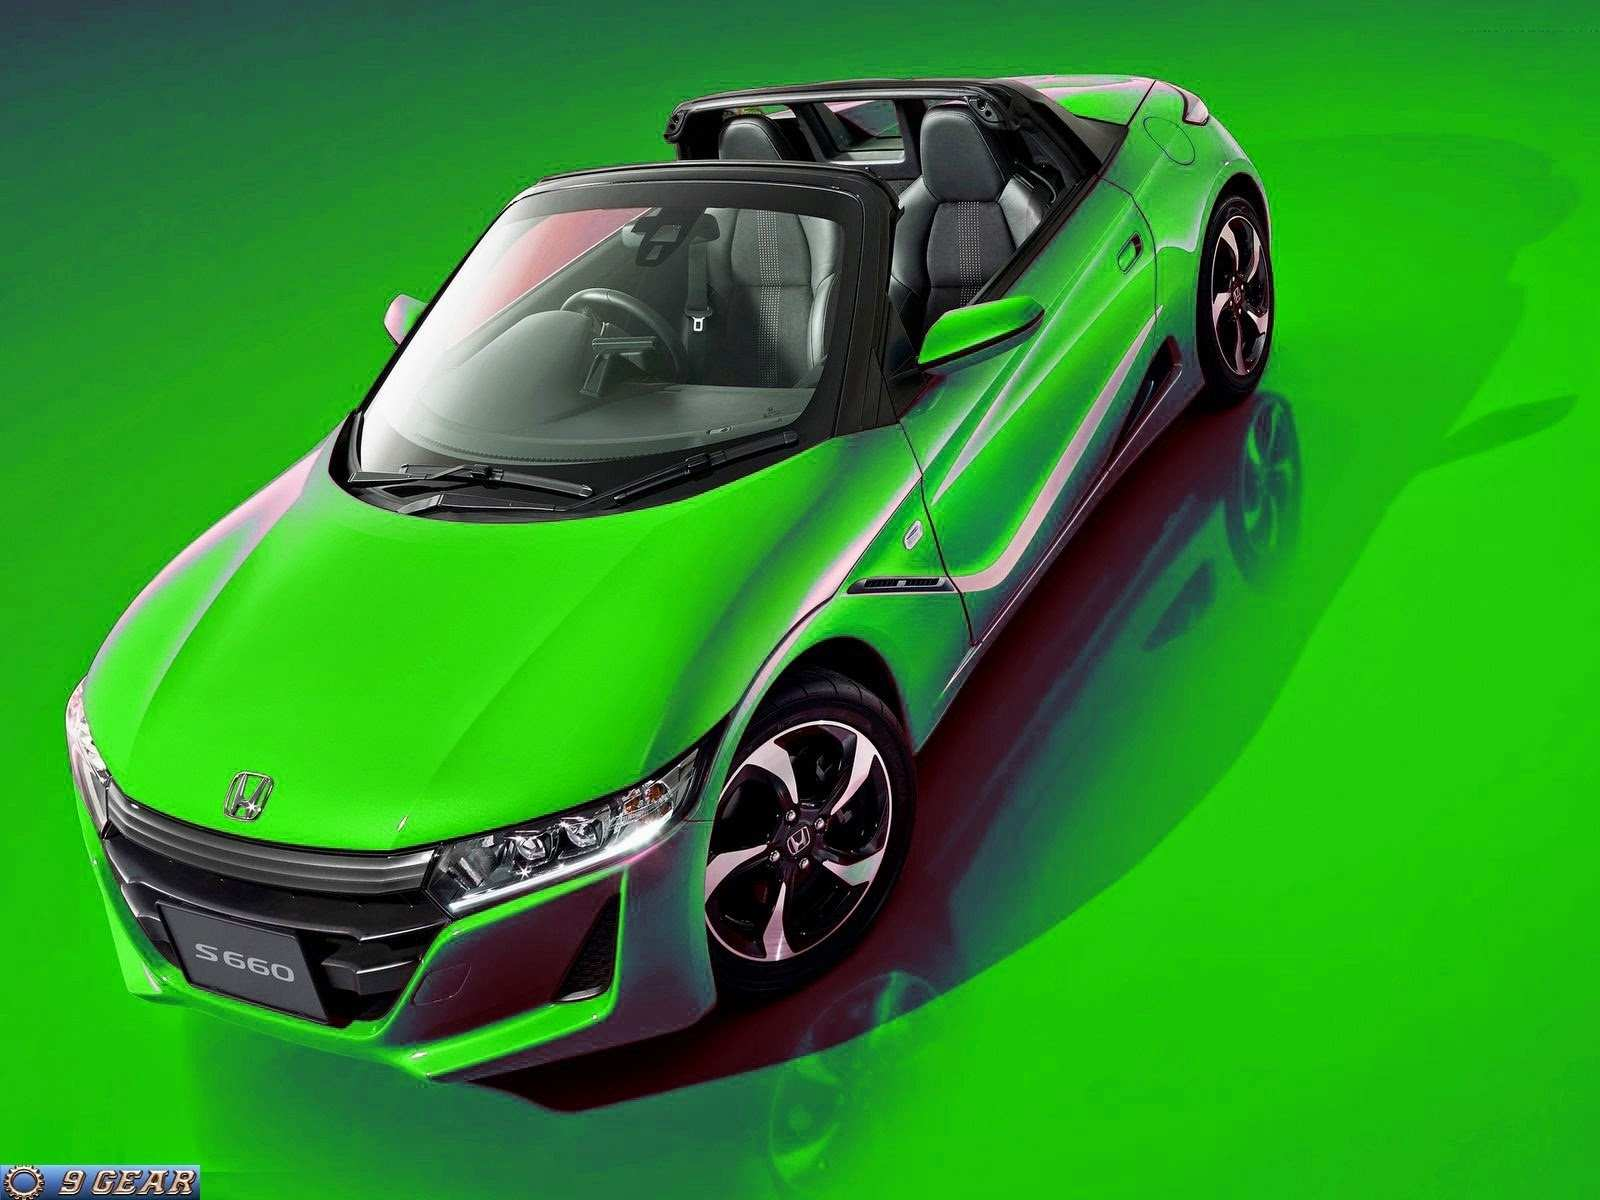 48 The Best 2020 Honda S660 Specs